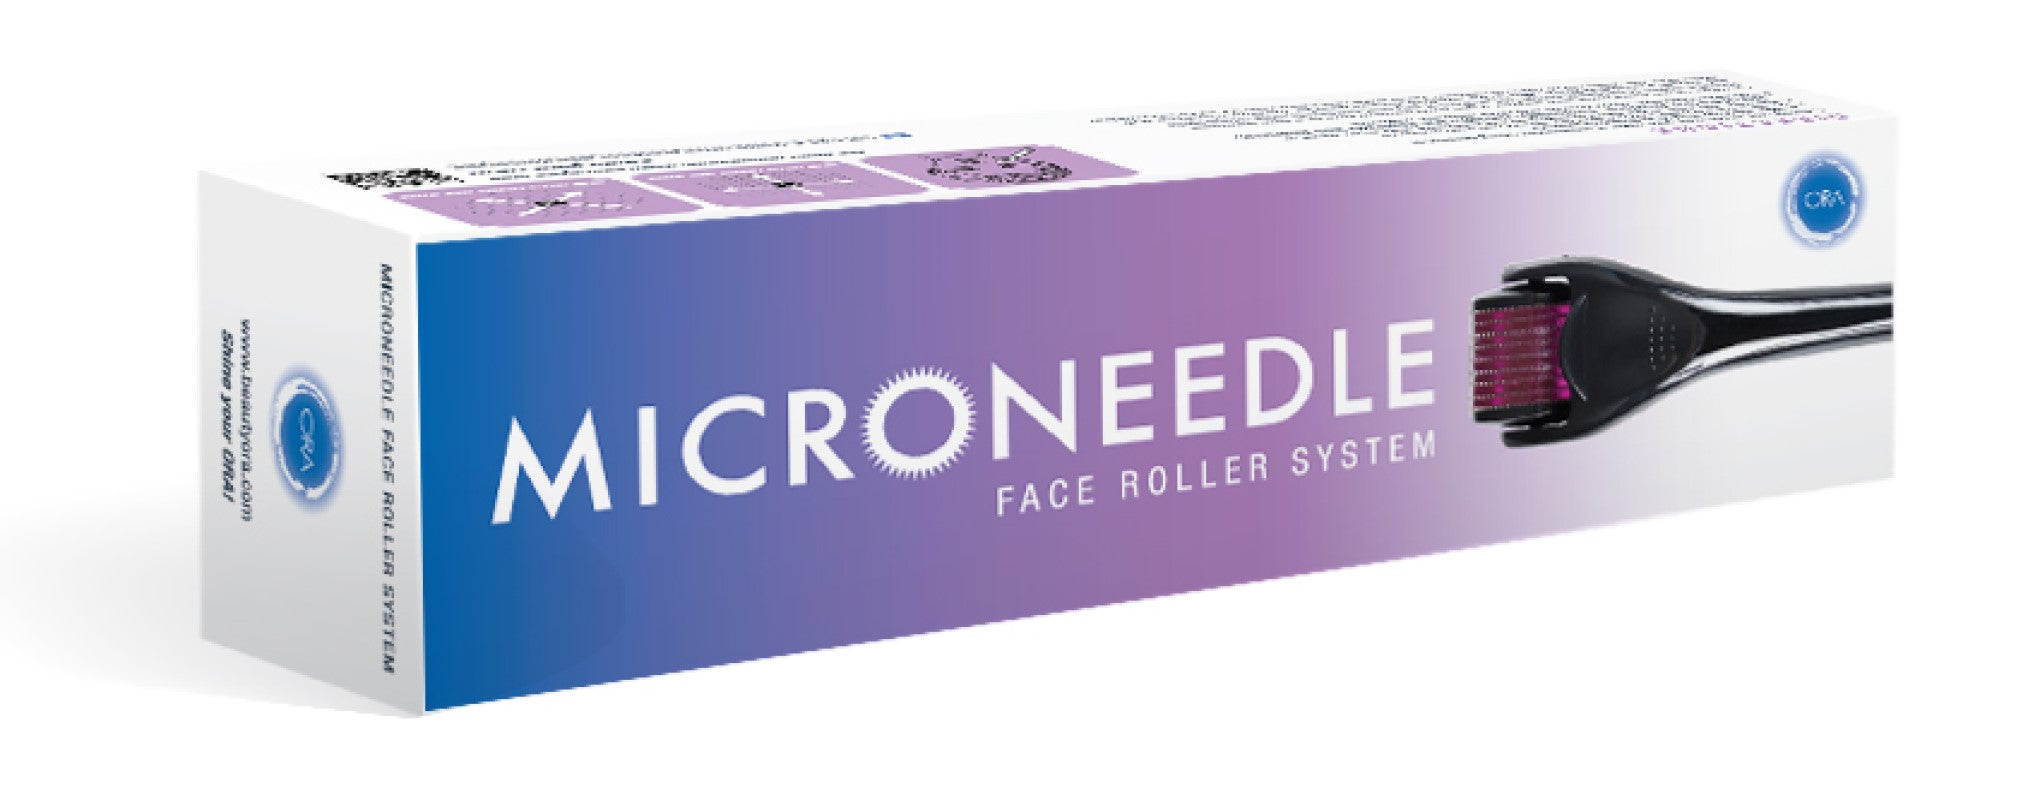 ORA Facial Microneedle Roller System (Anti-Wrinkles, Stretch Marks, Scars & Cellulite) - 0.25mm